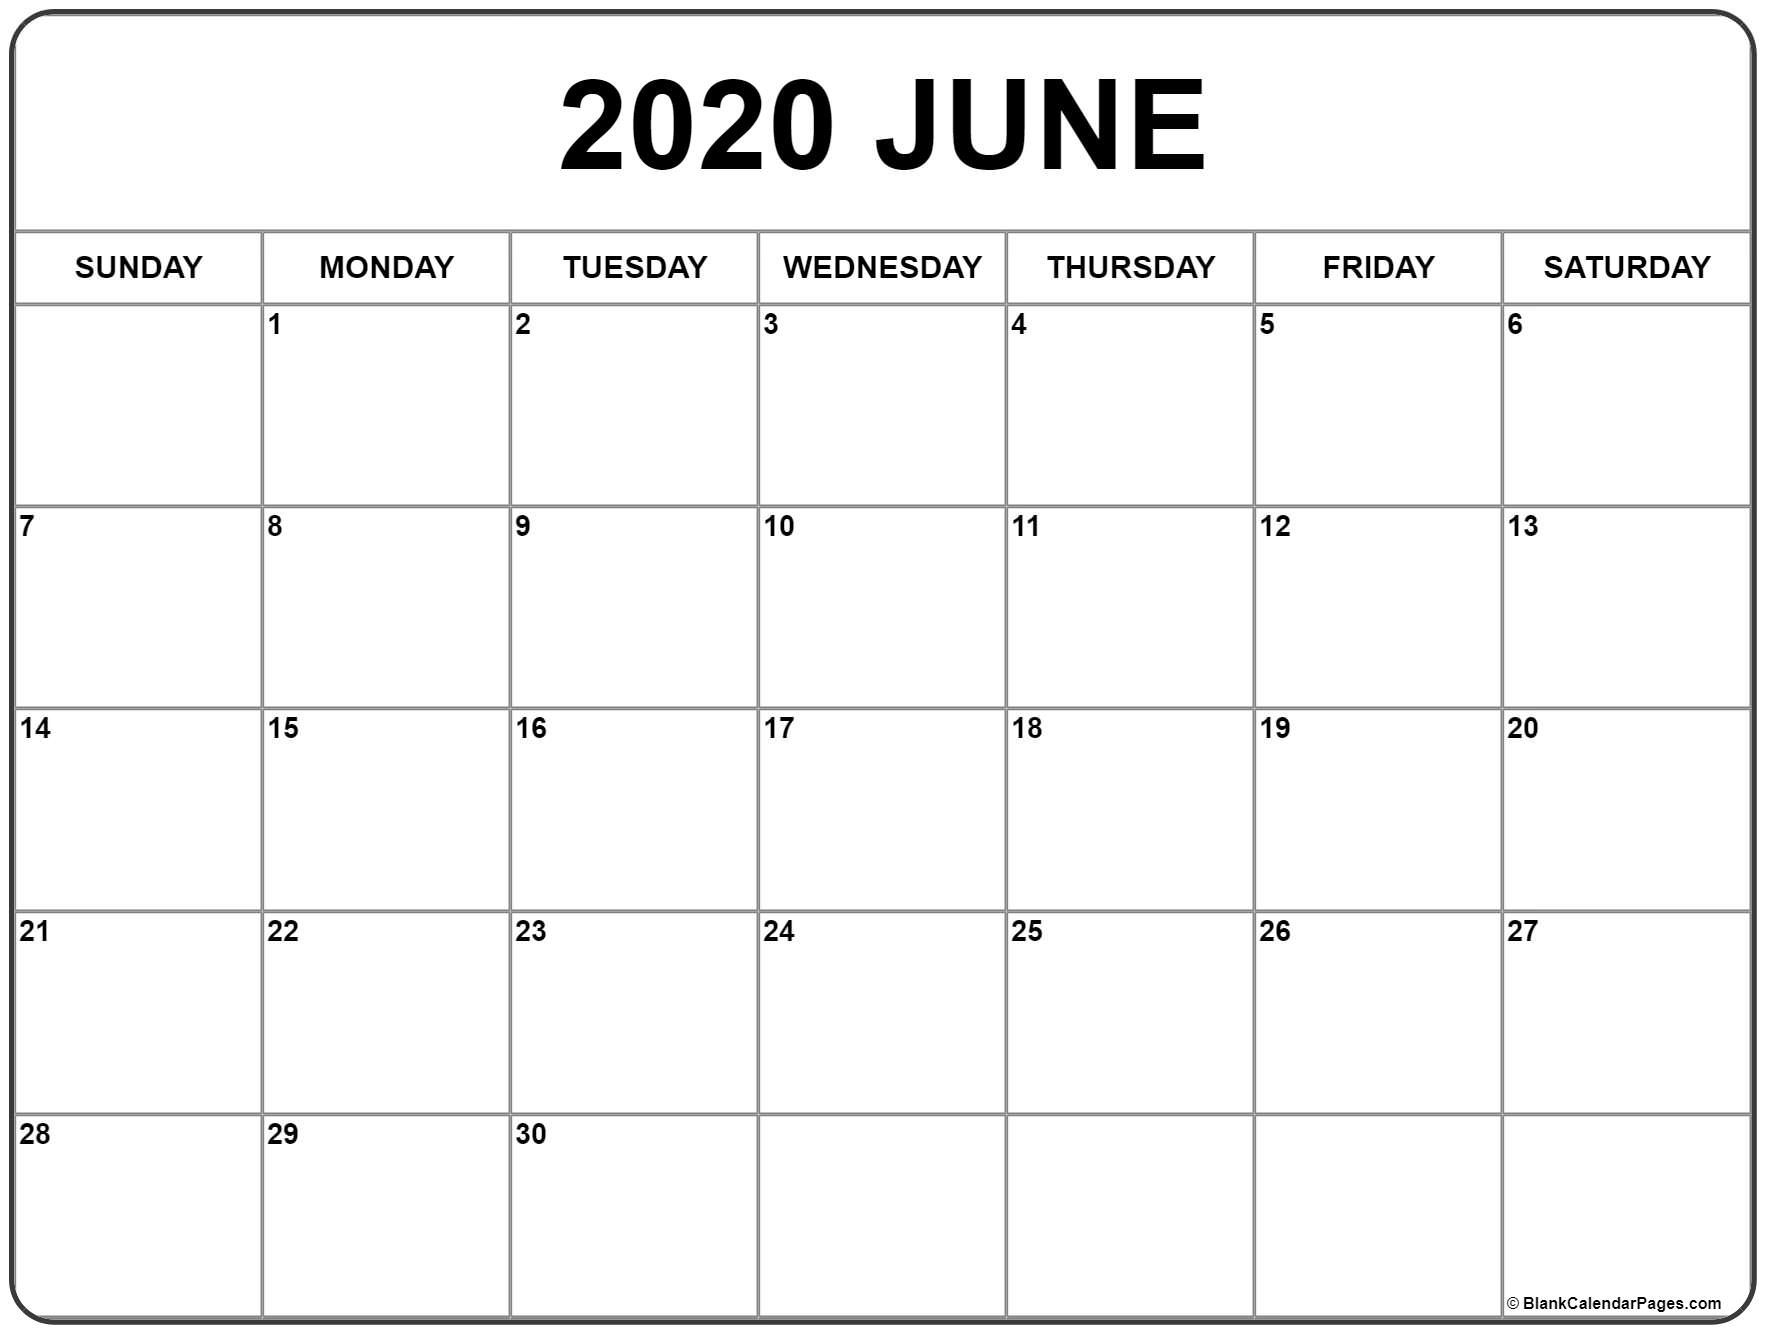 June 2020 Calendar | Free Printable Monthly Calendars for Free Printable Calander 2020 Victoria Wiht Spaces To Write